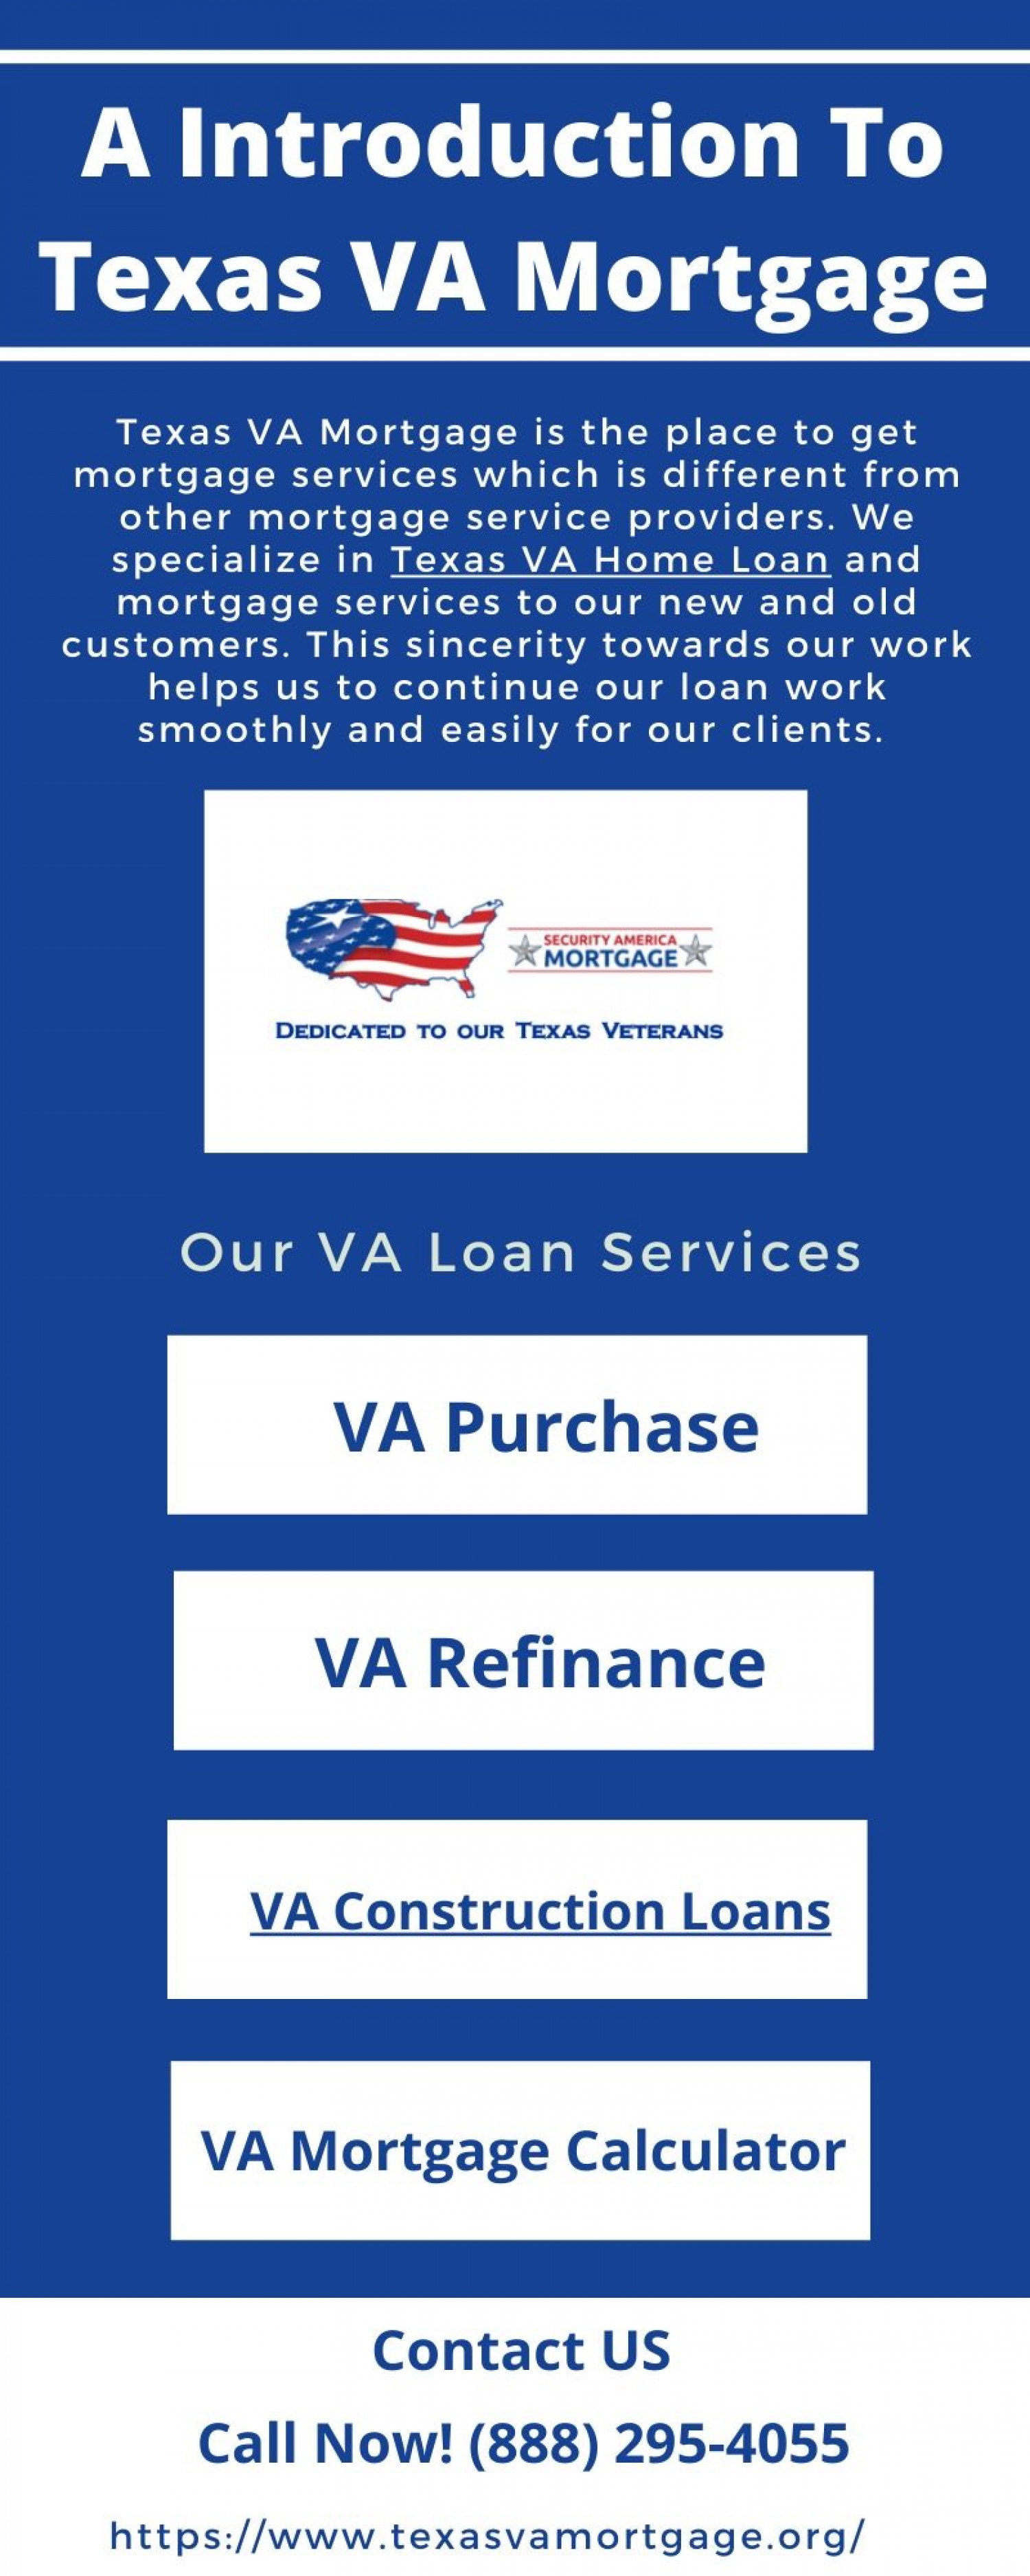 An Introduction To Texas VA Mortgage Infographic